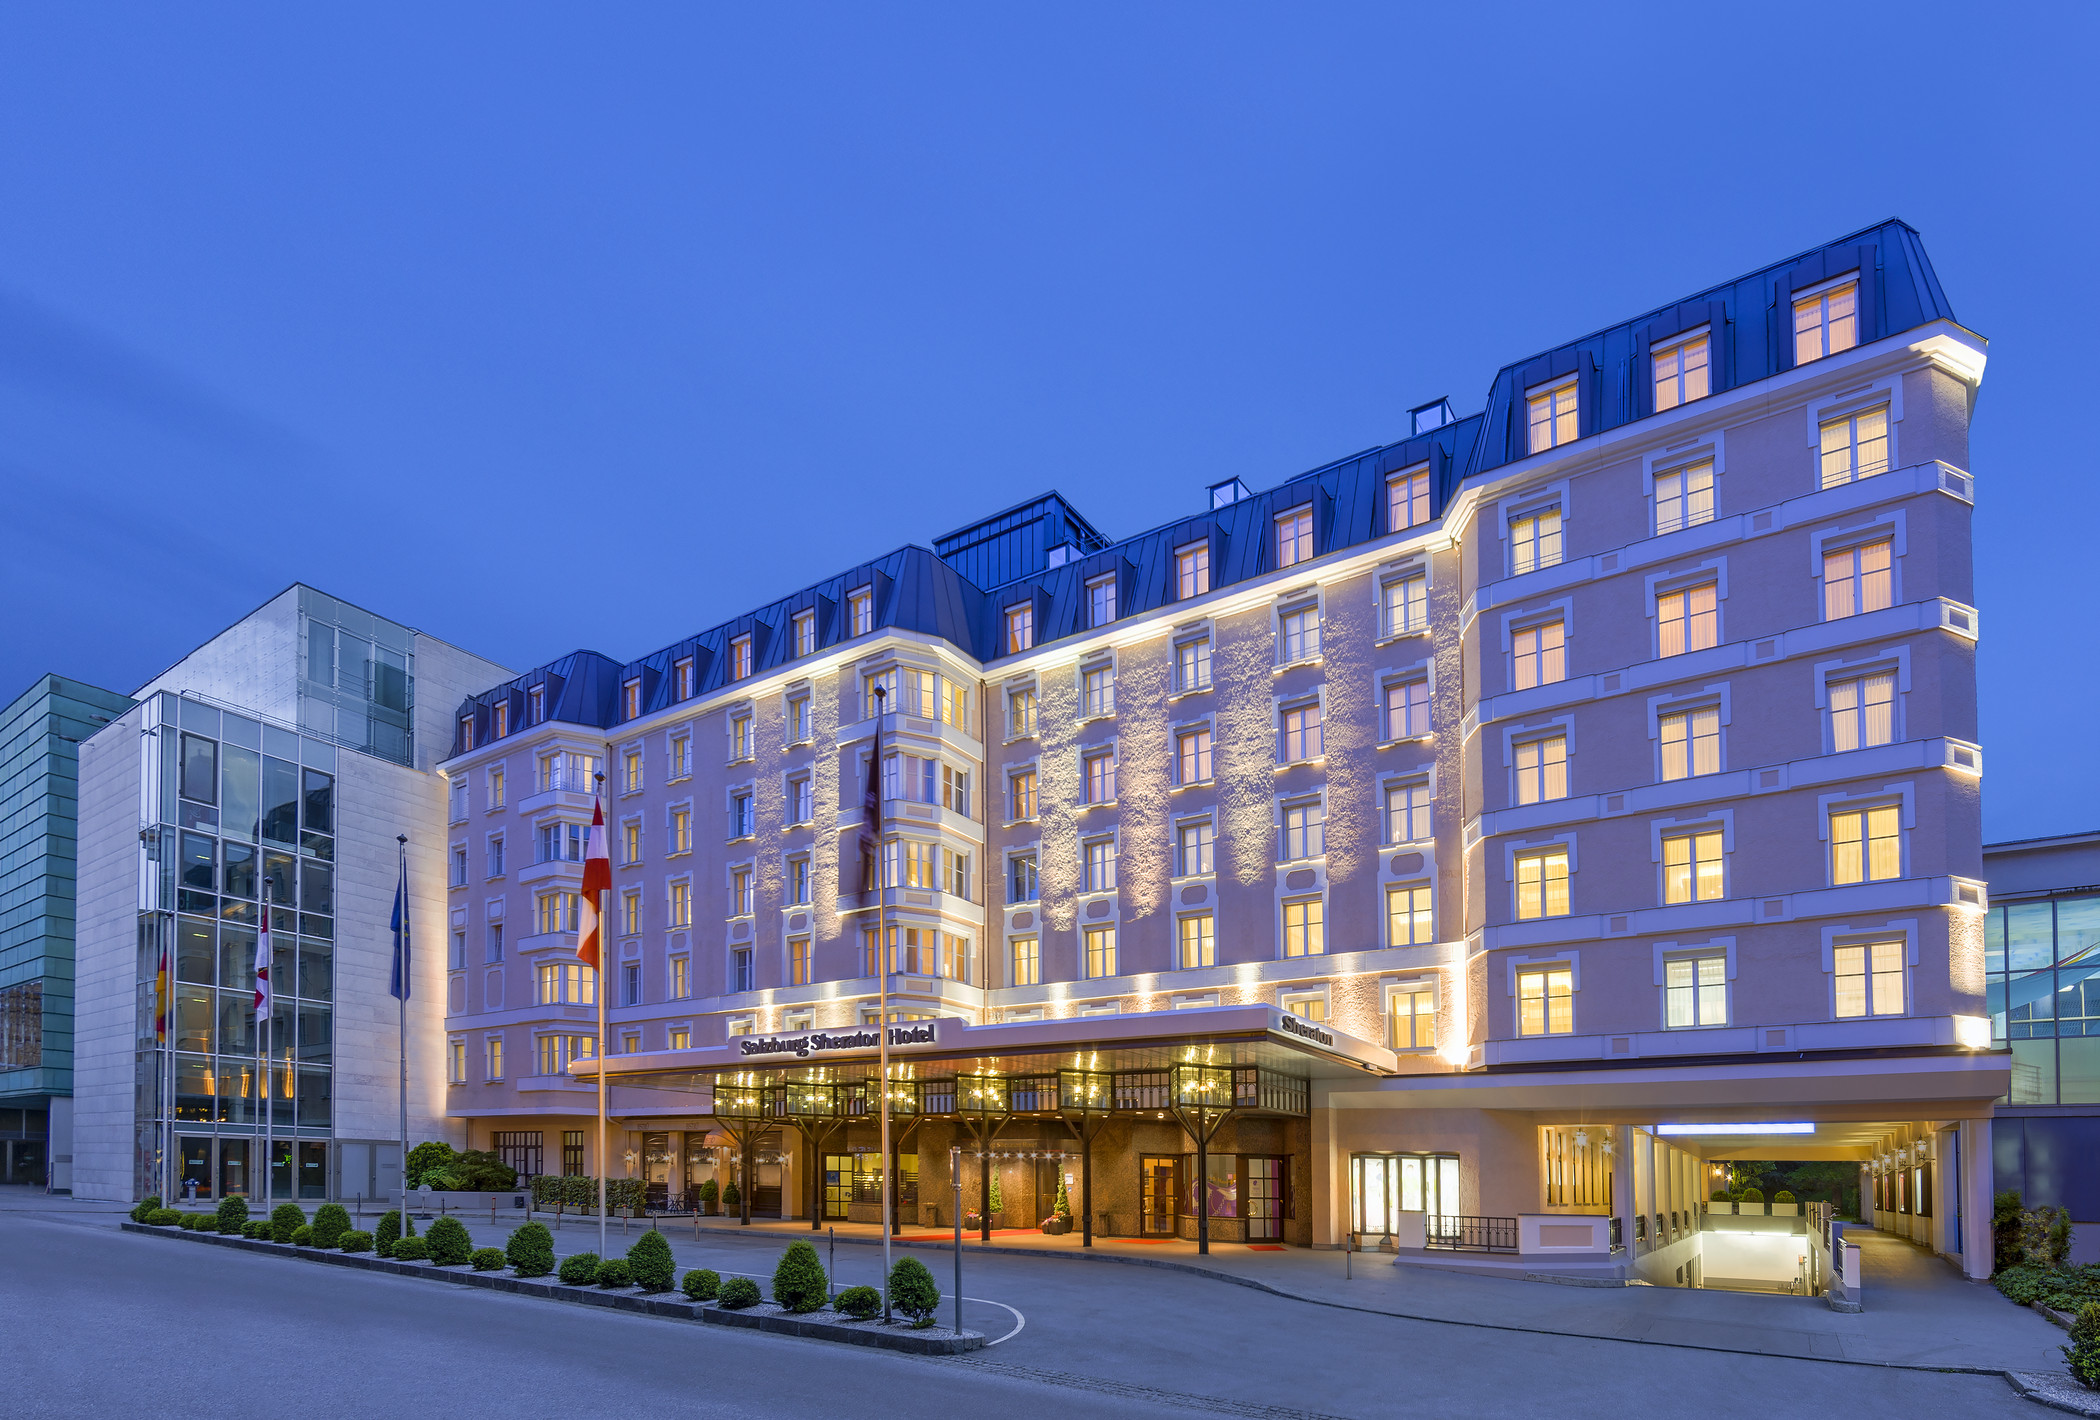 Marriott sells sheraton turnaround to analysts and for Design boutique hotel salzburg